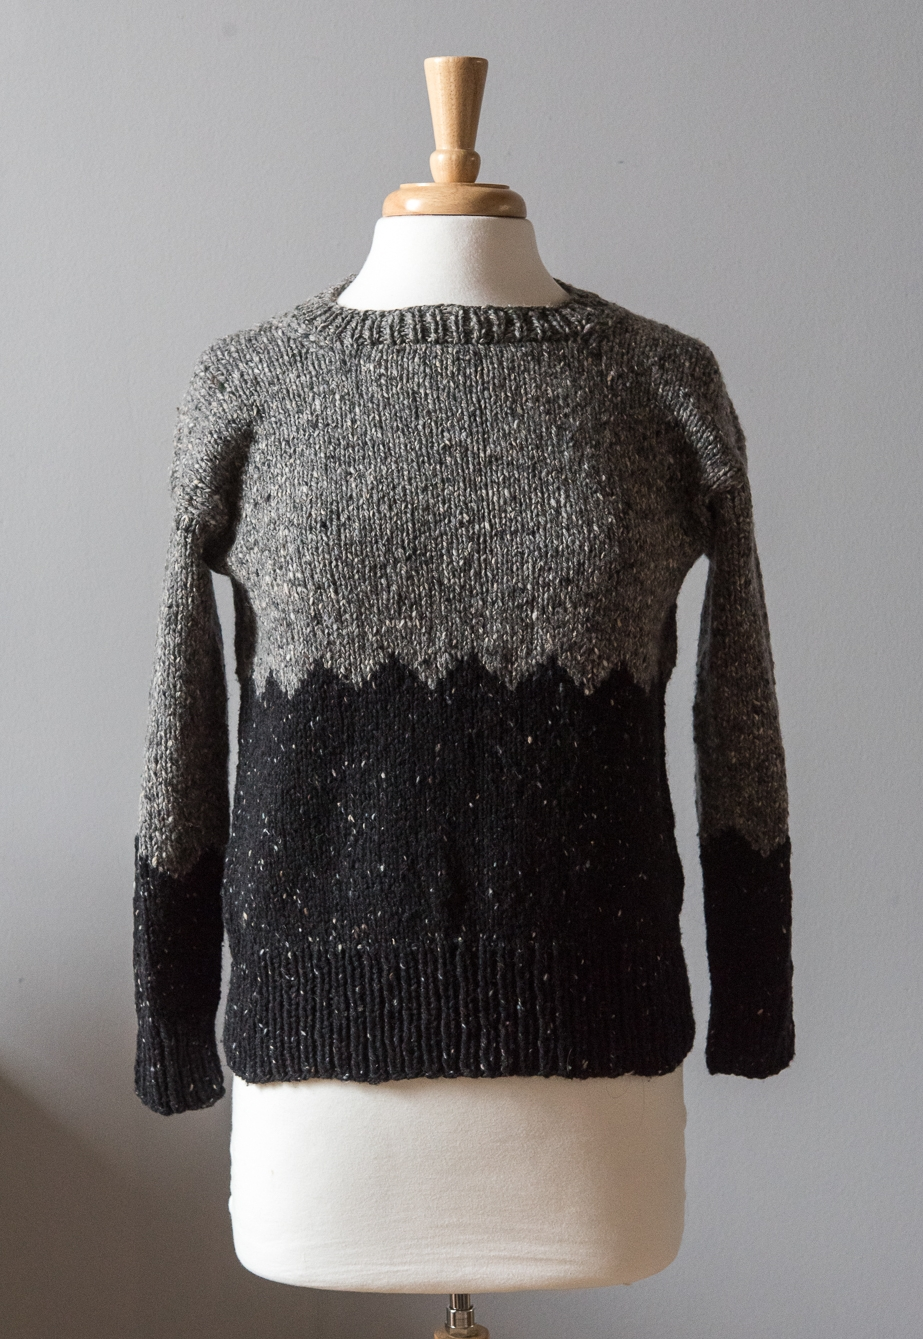 The Fibre Co. Arranmore, wild atlantic way sweater